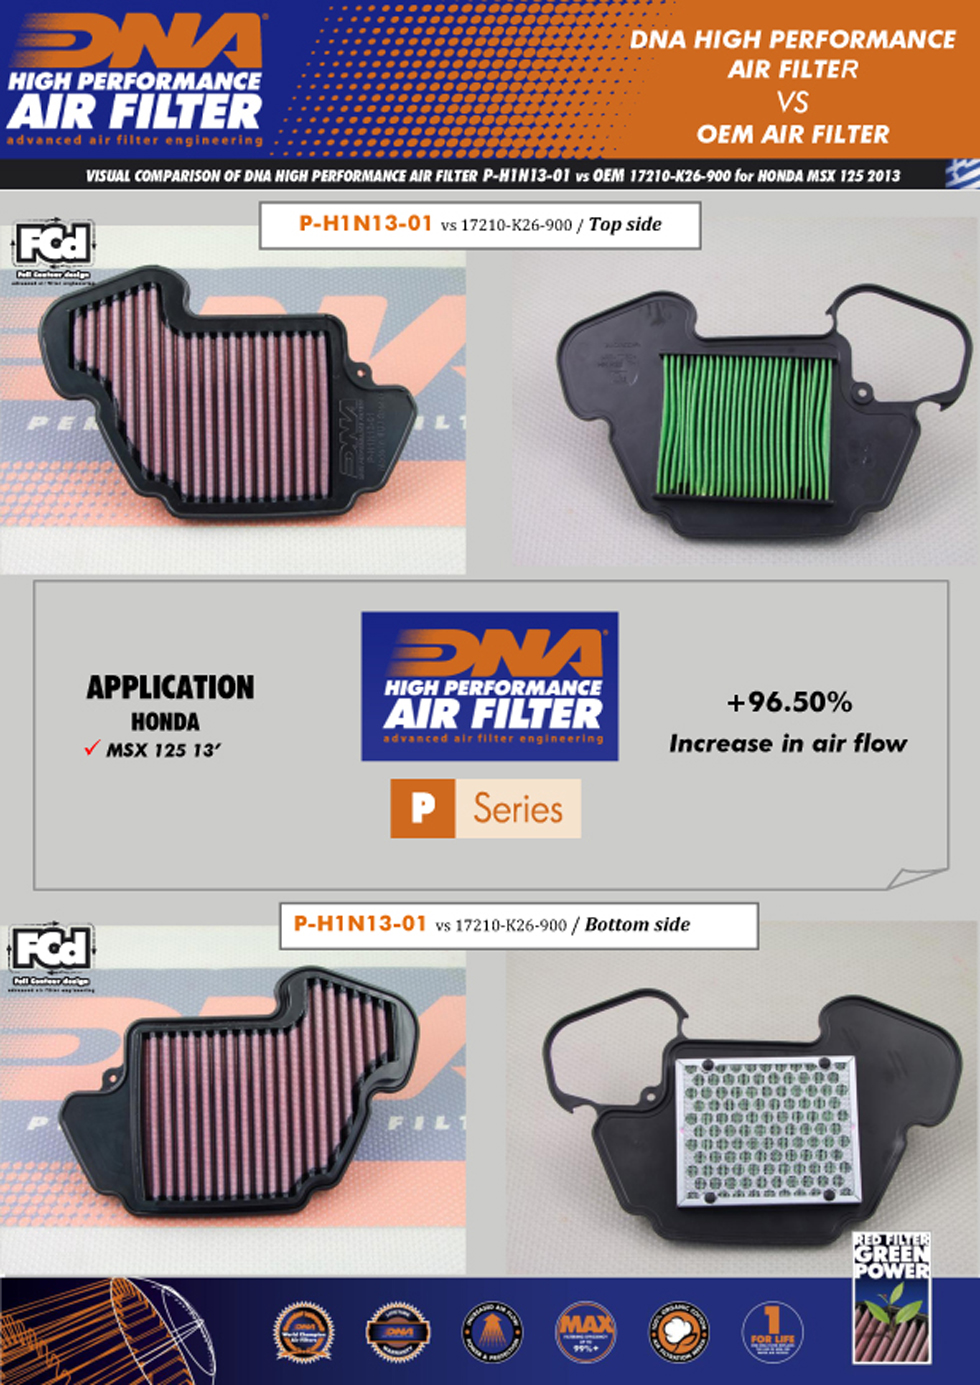 DNA air filters are a great performance upgrade for your honda motorcycle